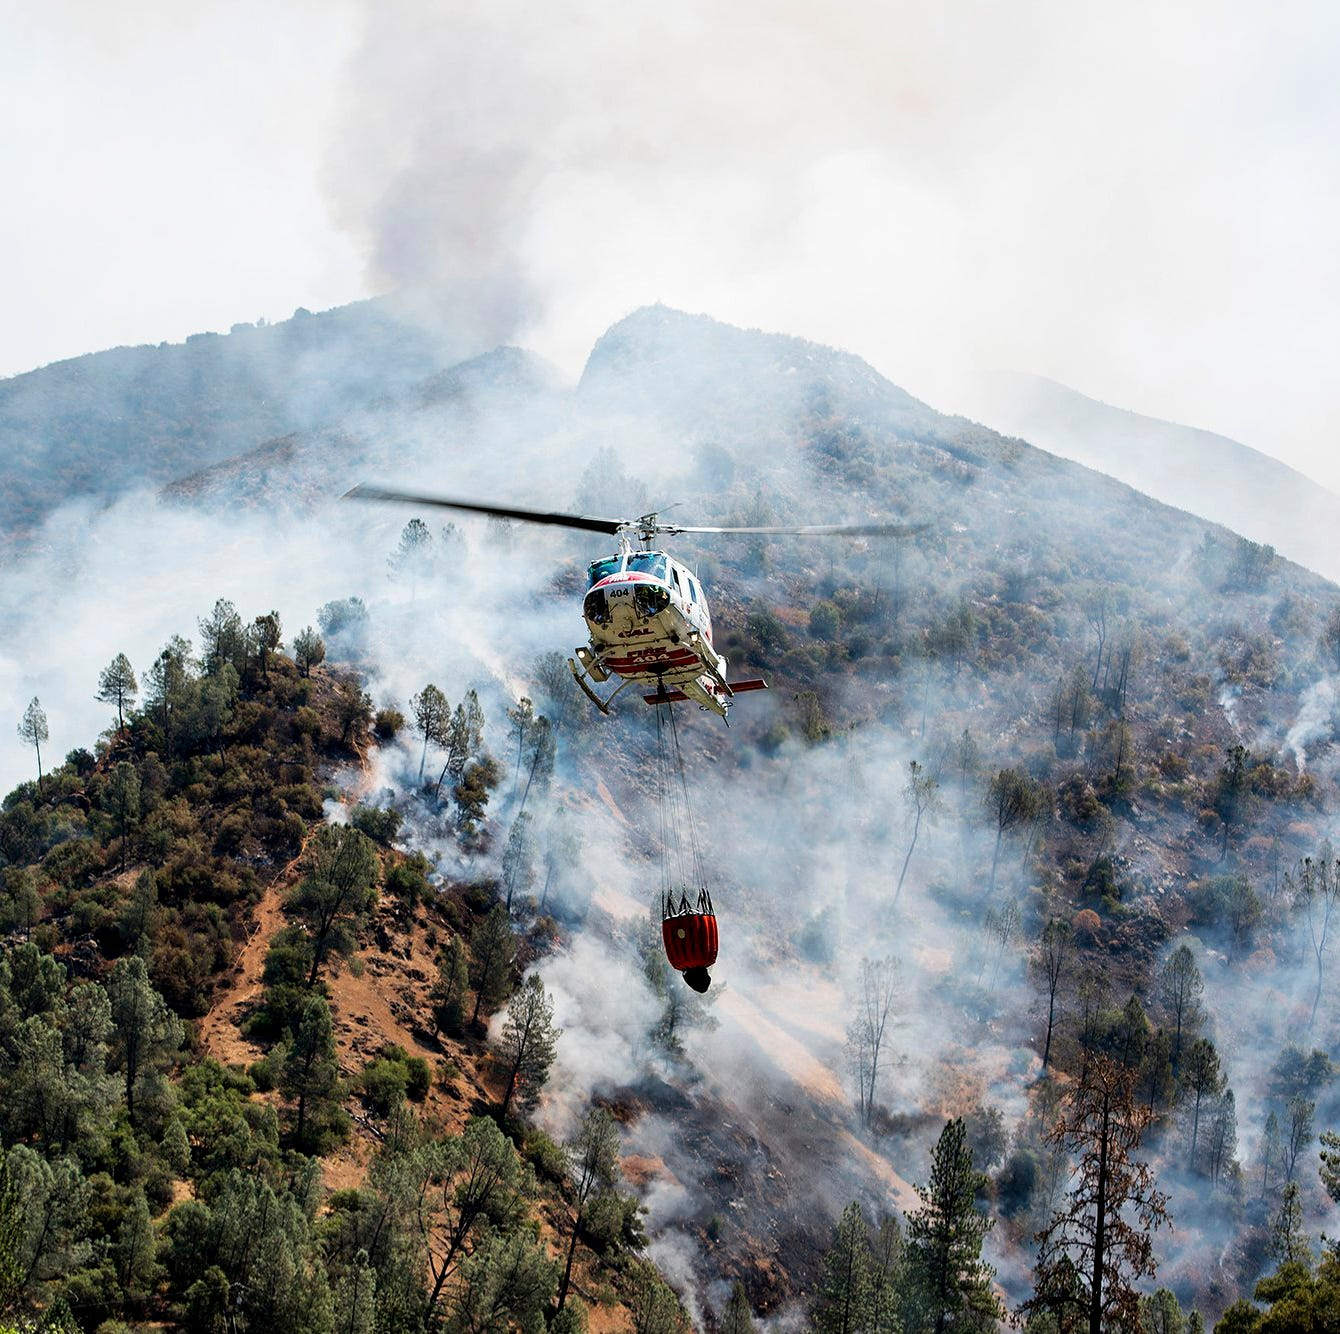 A helicopter gathers water from the Merced River to fight the Ferguson Fire along steep terrain behind the Redbud Lodge near El Portal along Highway 140 in Mariposa County, Calif., on Saturday, July 14, 2018. (Andrew Kuhn /The Merced Sun-Star via AP)